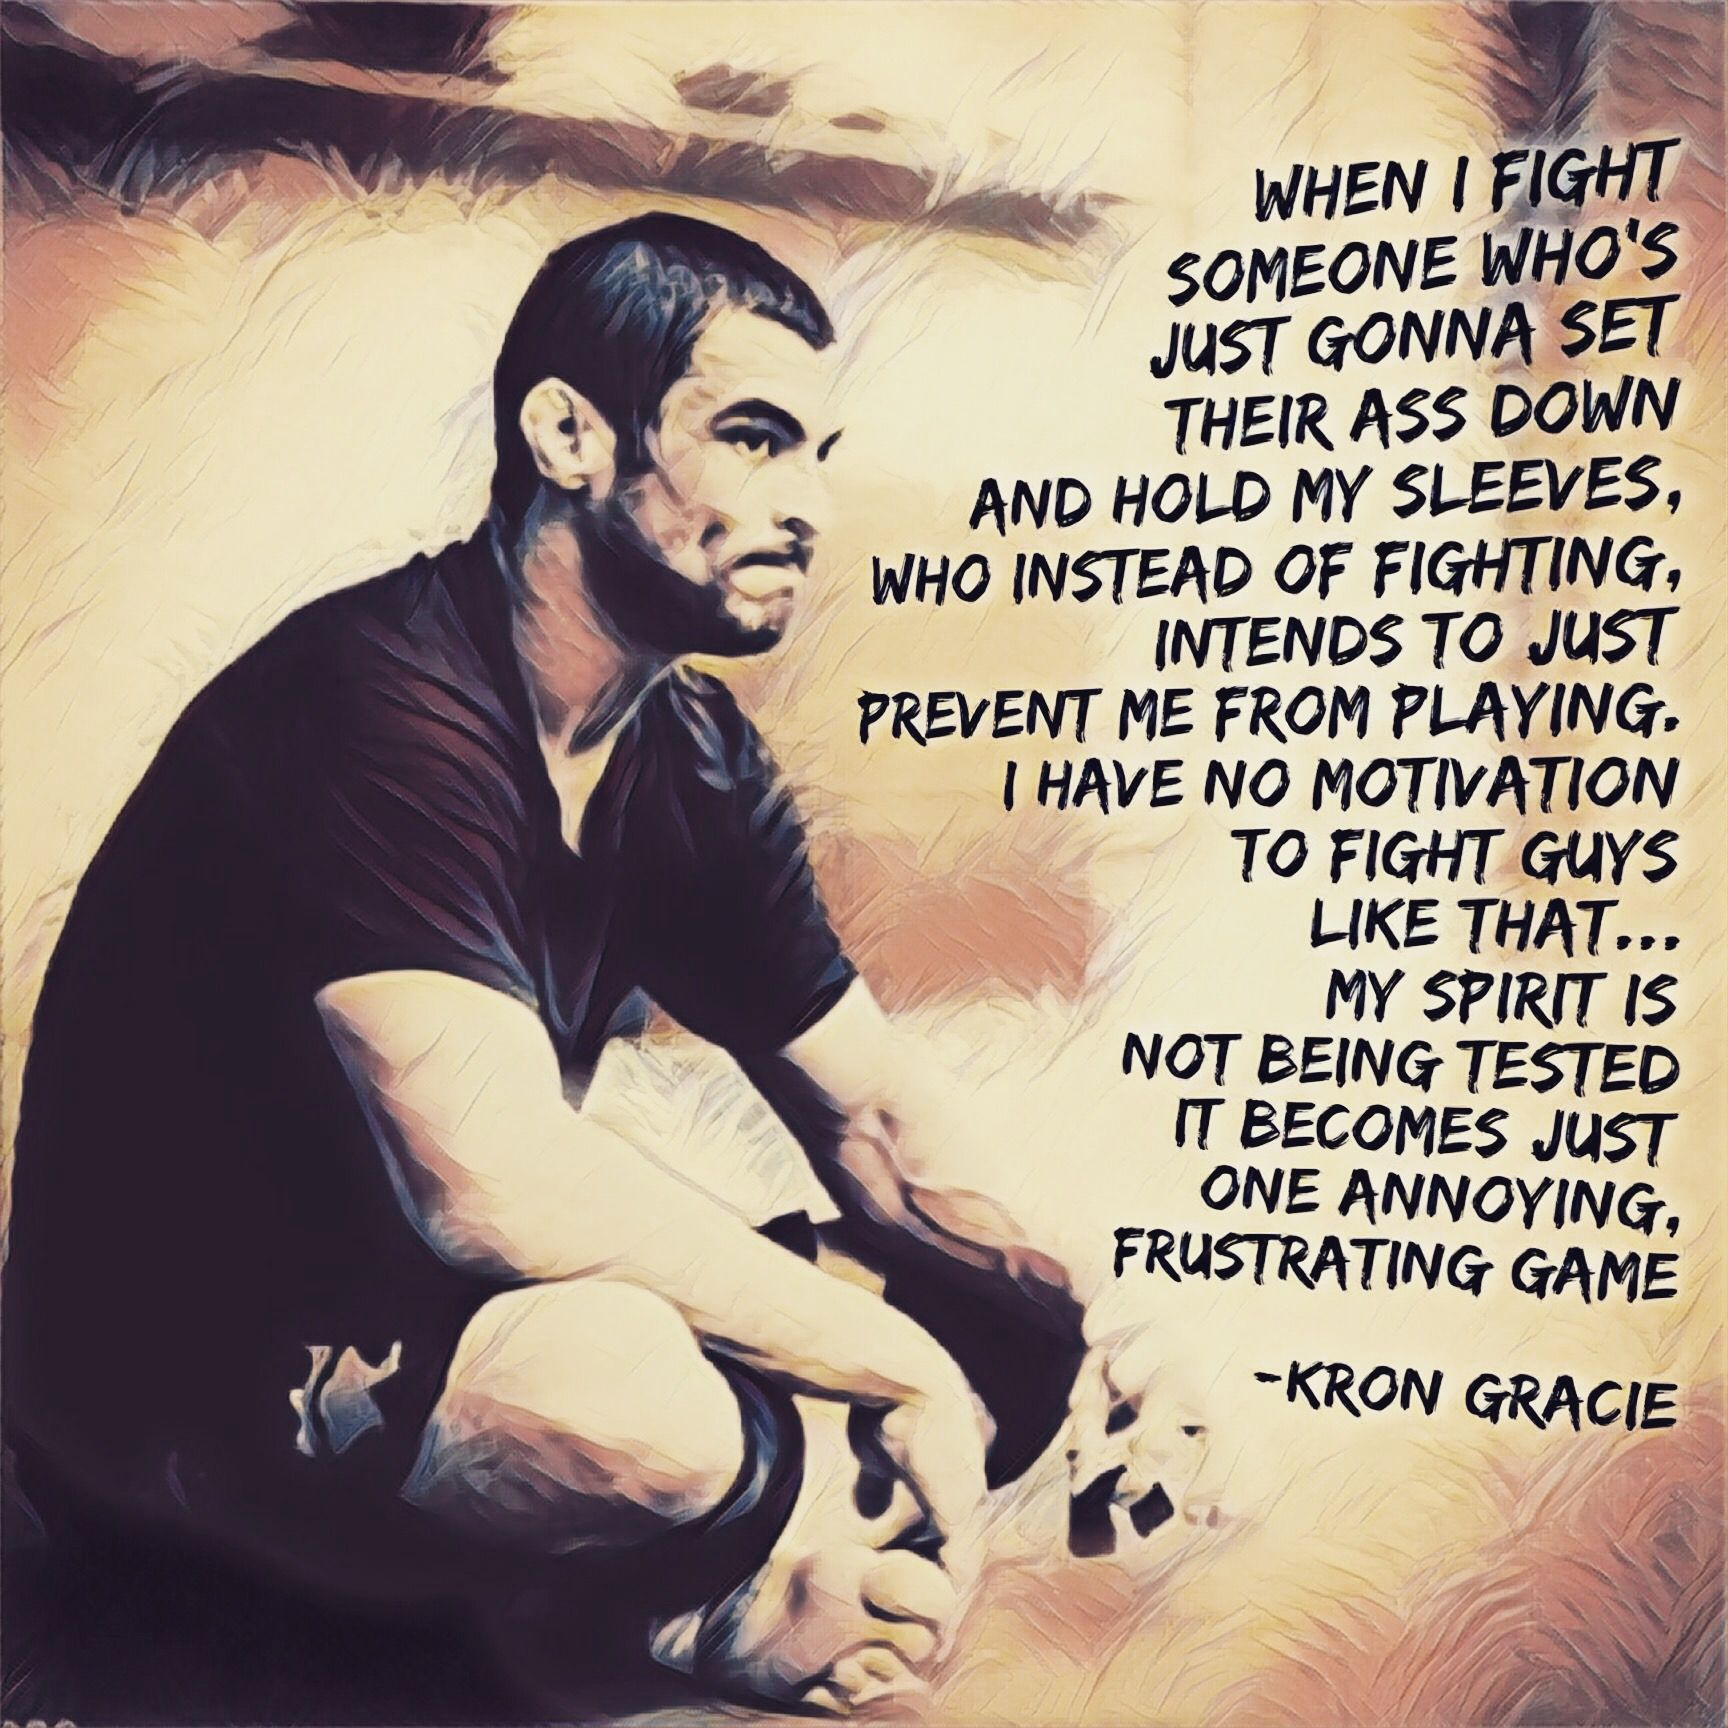 Jiu Jitsu Quotes Kron Gracie Bjj Jiujitsu Quote Follow Instagram Bjj_Philosophy